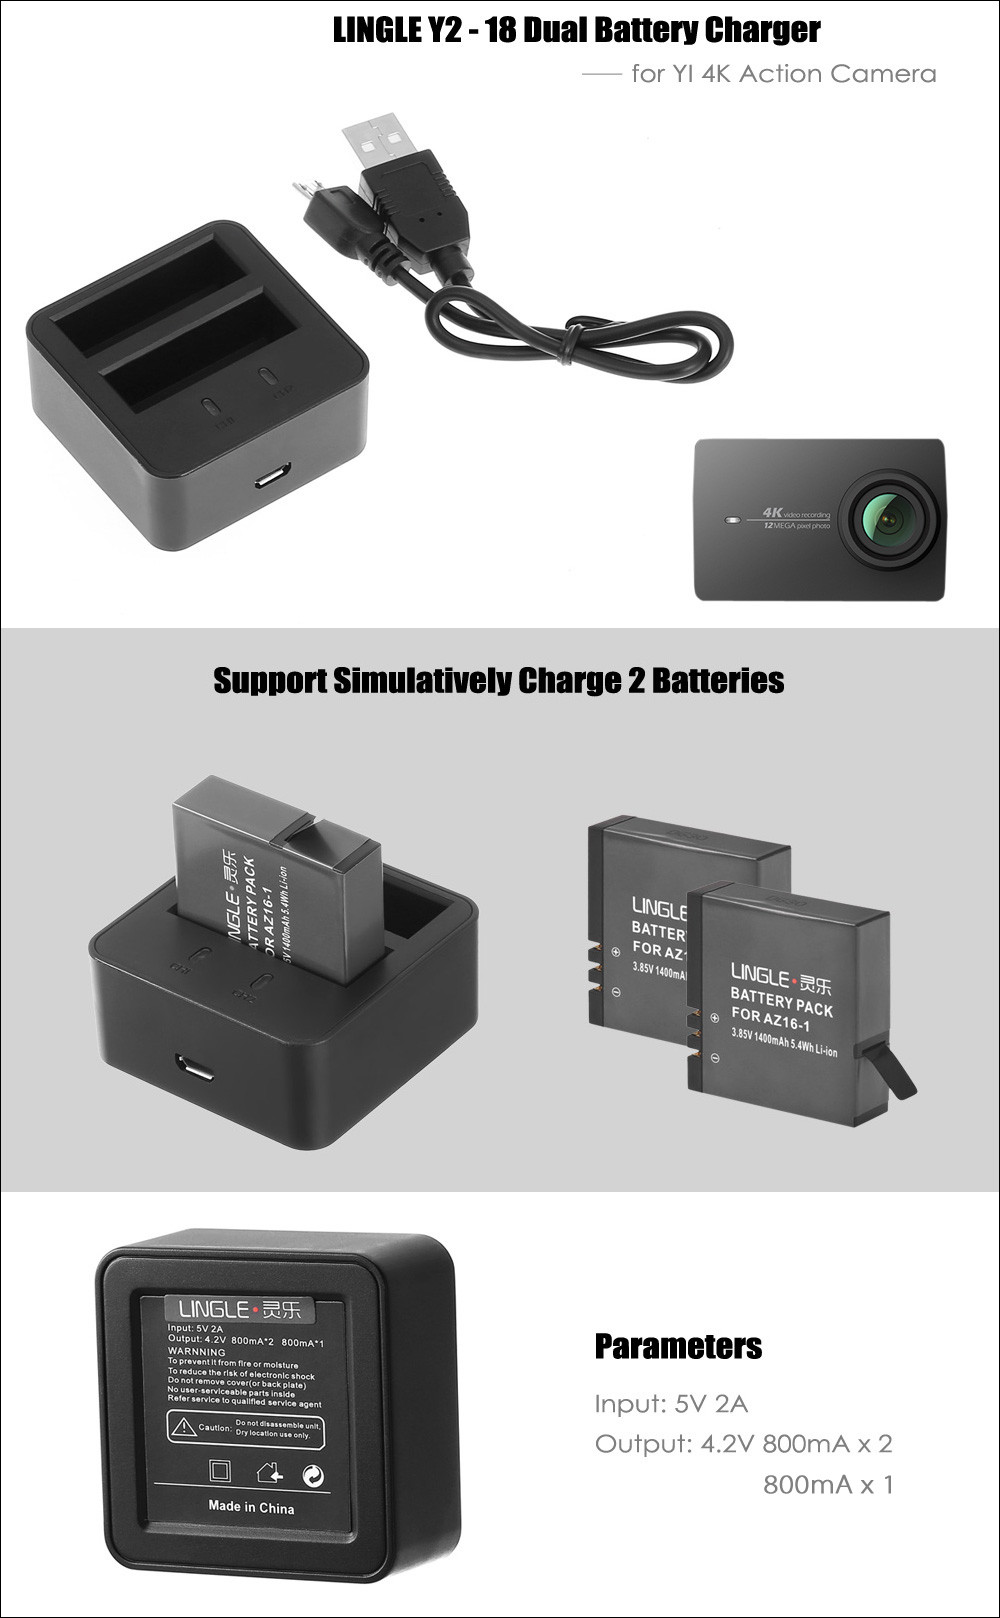 LINGLE Y2 - 18 Square Shaped Dual Battery Charger for YI 4K Action Camera